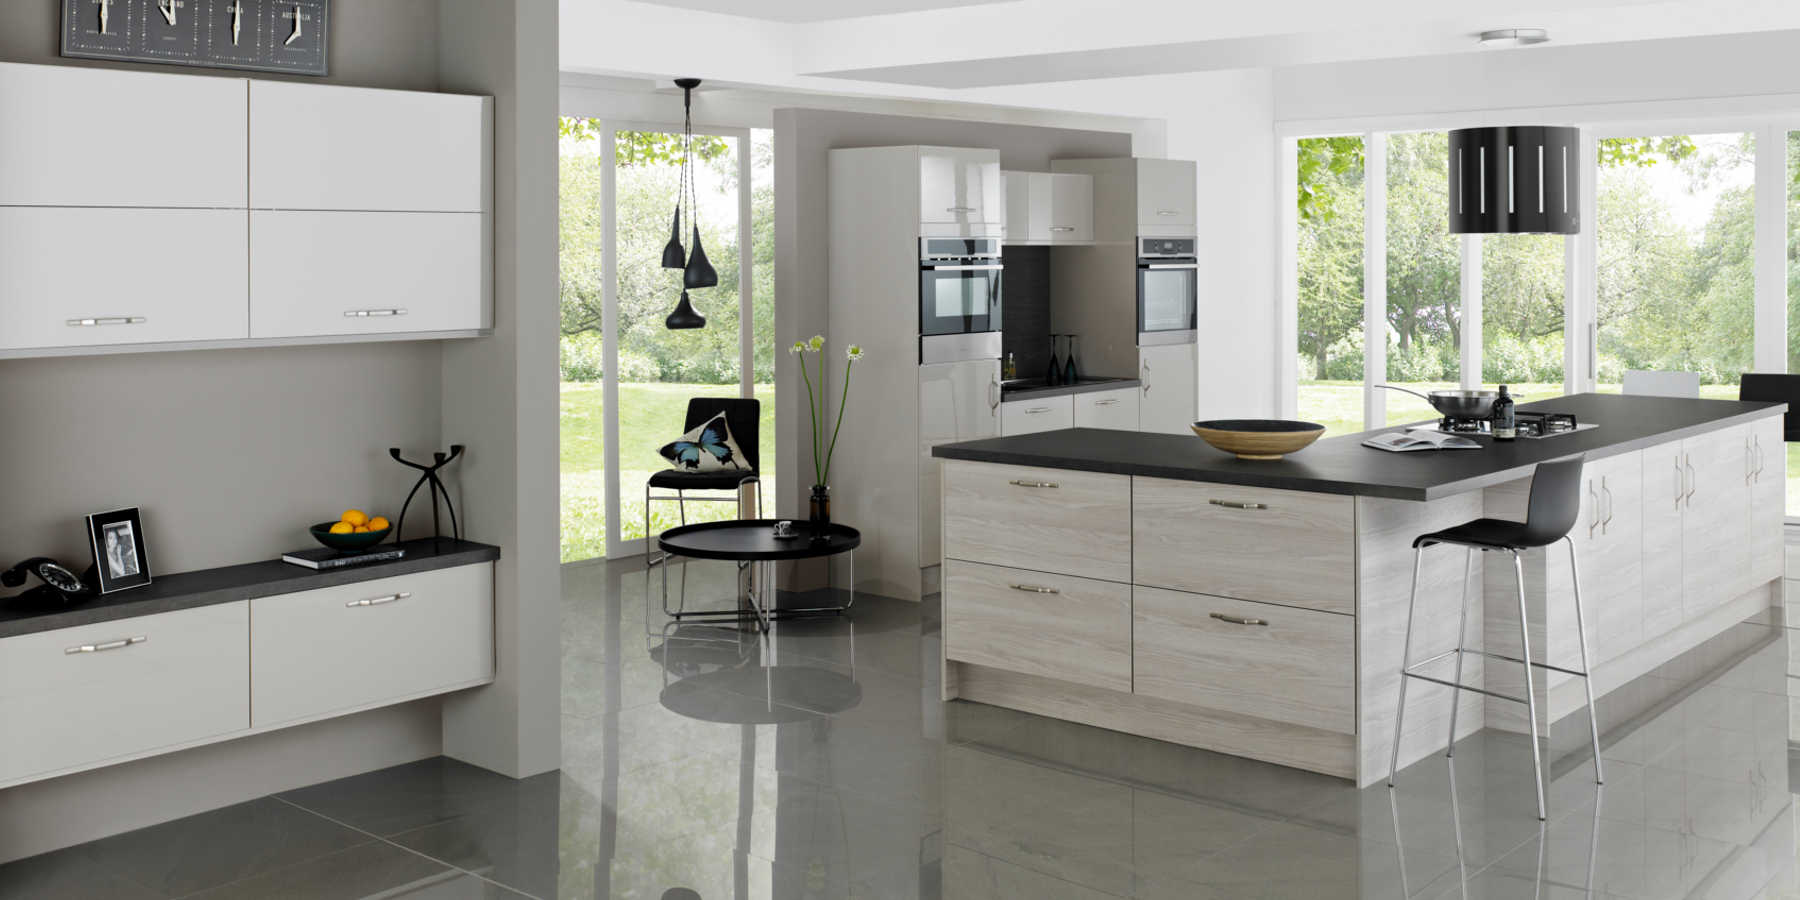 Kitchens Of Woodbury Reviews